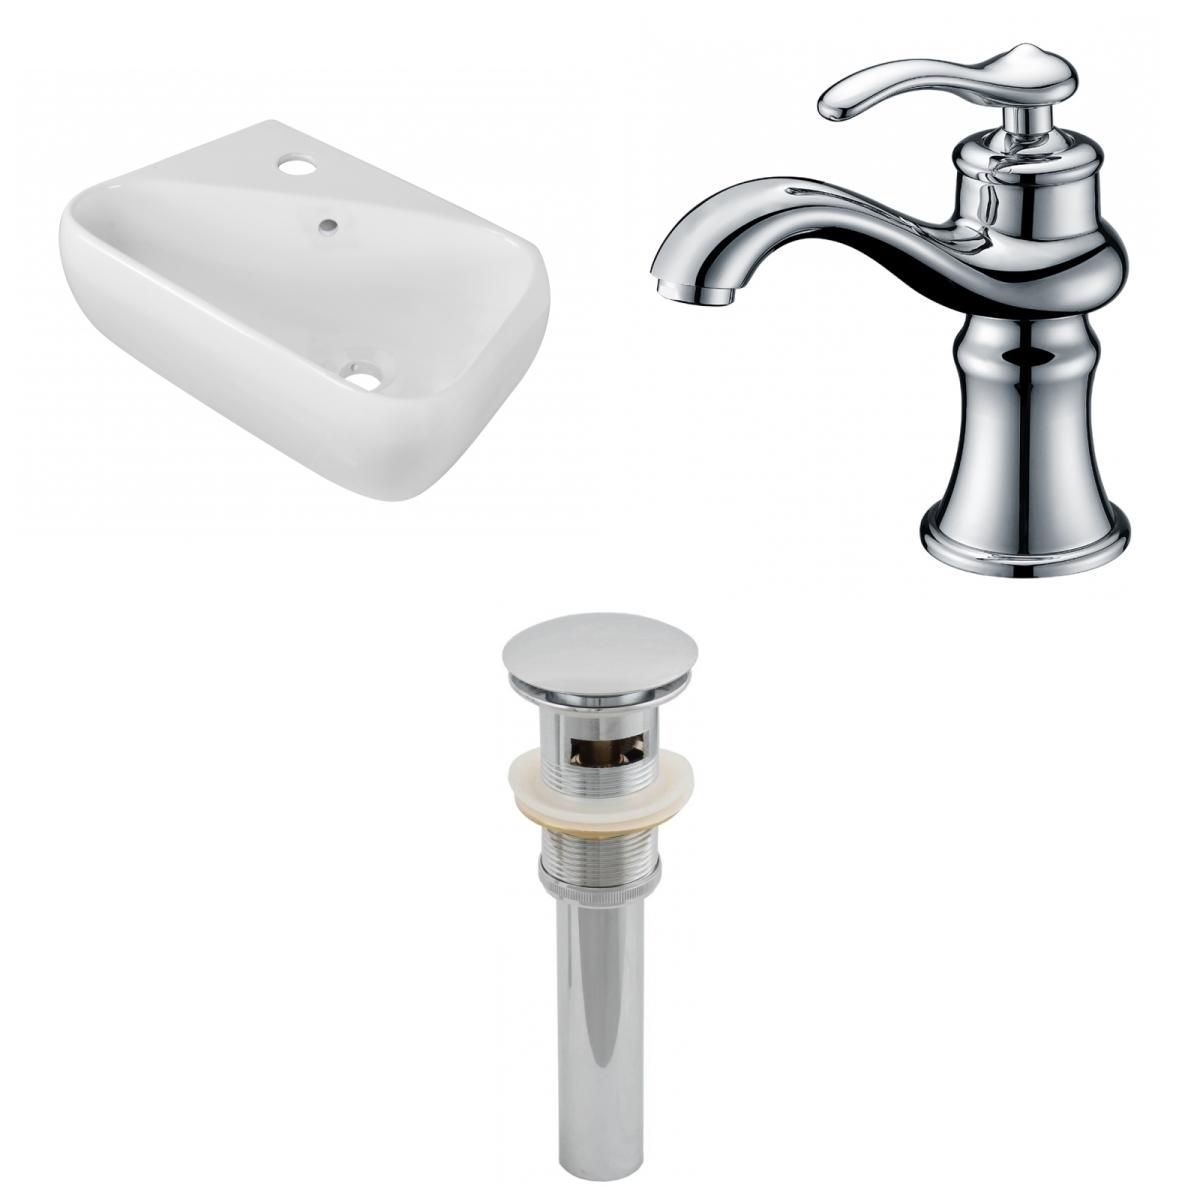 American Imaginations AI-26260 17.5 in. Rectangle Above Counter White Vessel Set for 1 Hole Left Faucet